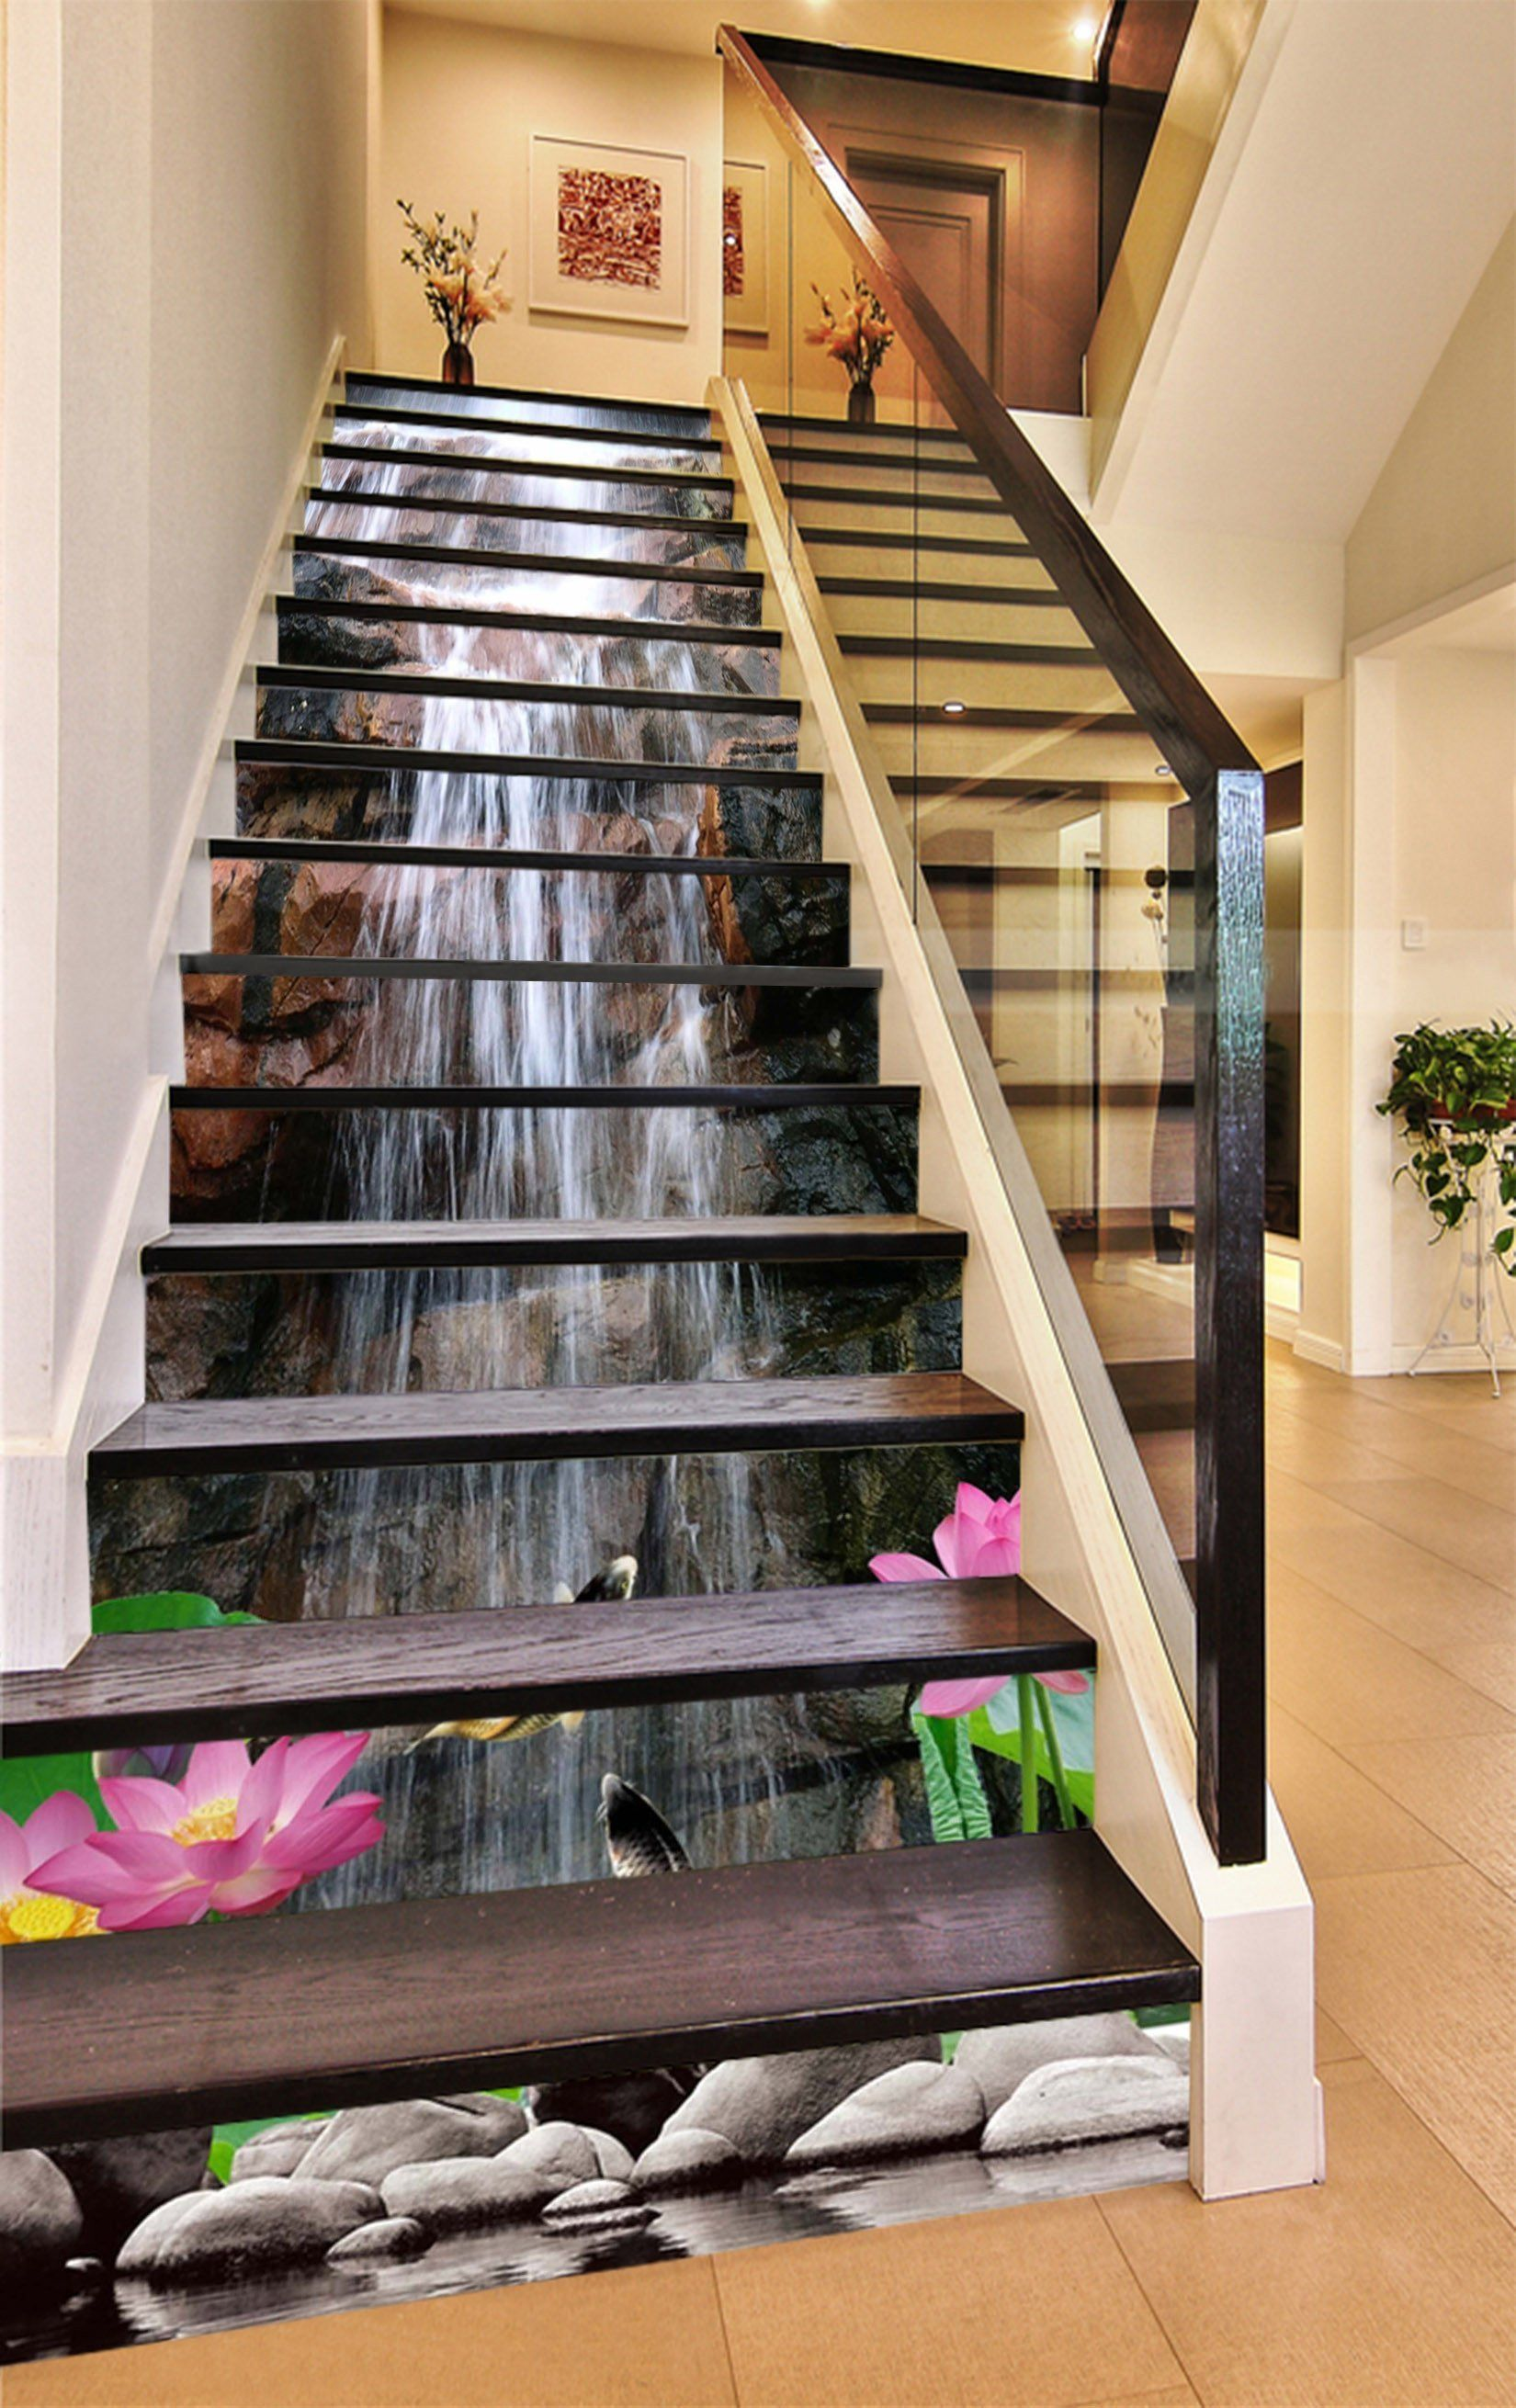 3d Waterfall Lotus Fishes 1367 Stair Risers Stairs In 2019